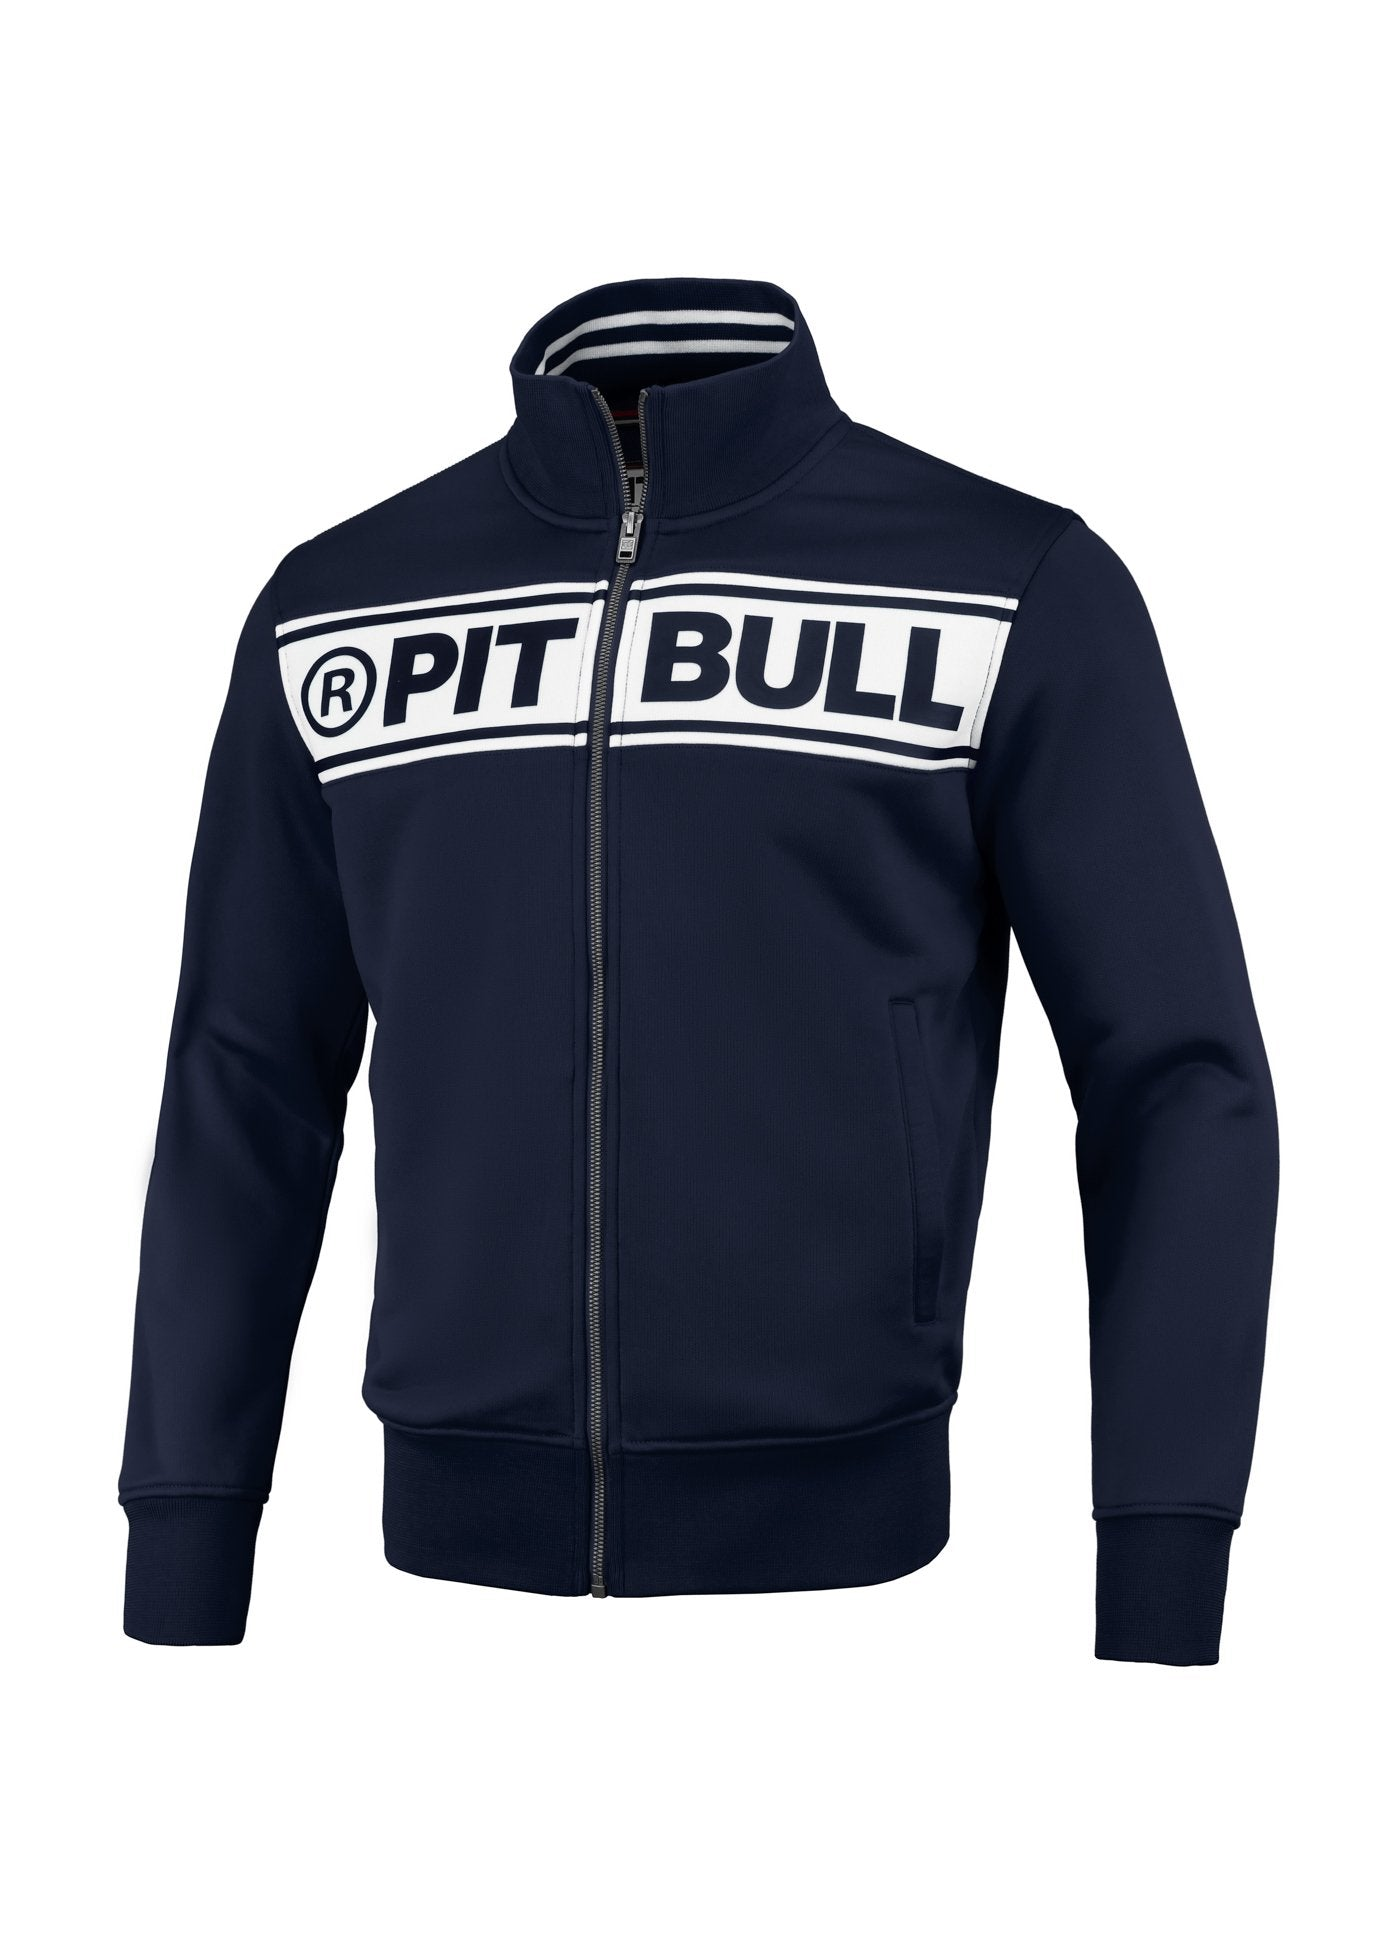 Oldschool Track Jacket Chest Logo Dark Navy Off White - pitbullwestcoast